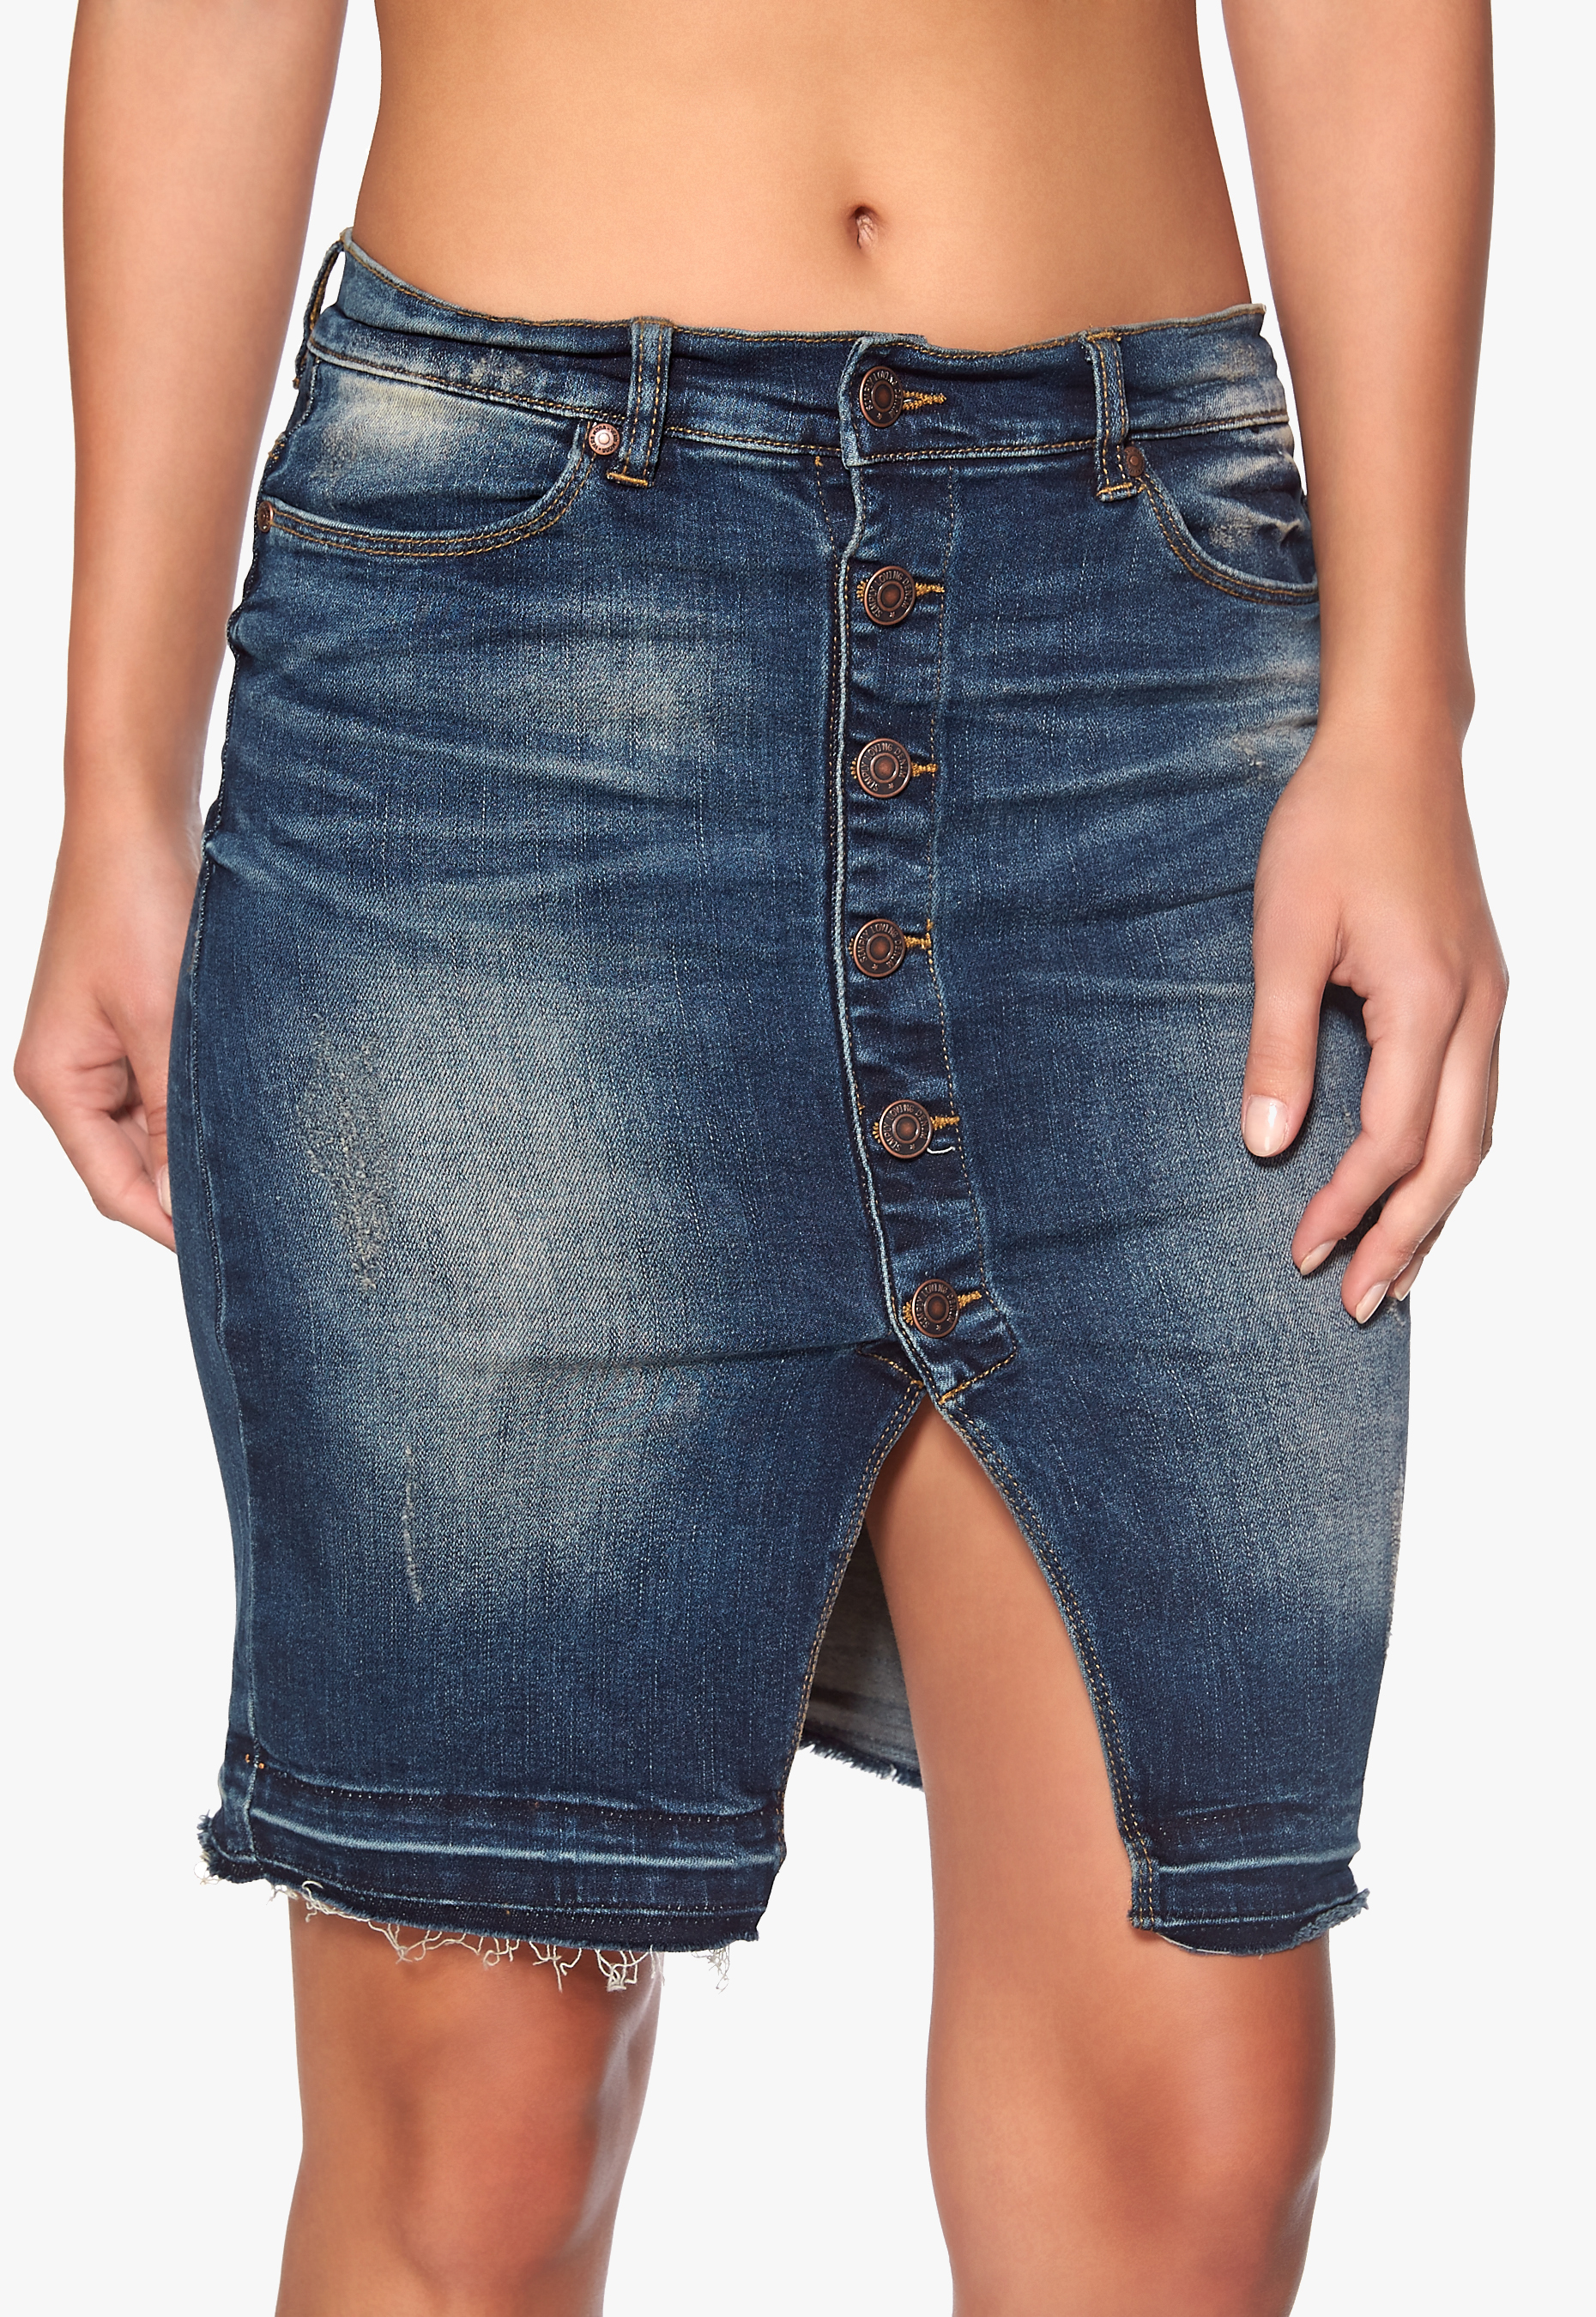 With the added support provided by Grommet Mart's Jean Rivets, your garments will perform and look their best. Jean rivets are offered in several basic styles that are attached using solid Metal Rivet Nails.